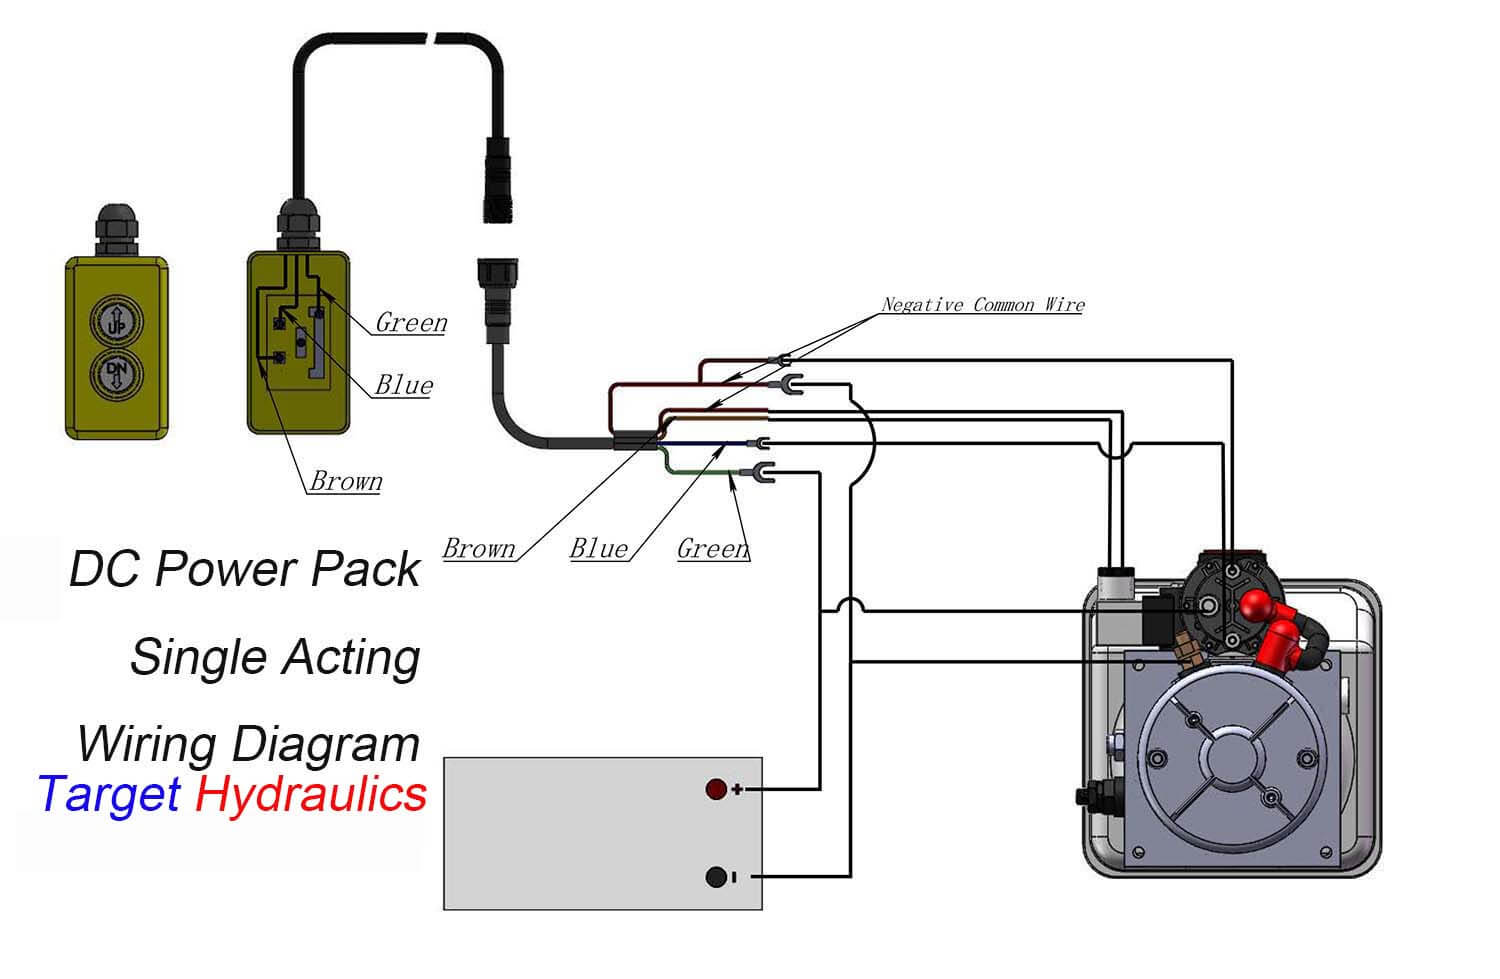 How to Wire_DC Motor Single Acting Power Pack how to wire hydraulic power pack,power unit diagram design 110 Power Cord Diagram at virtualis.co